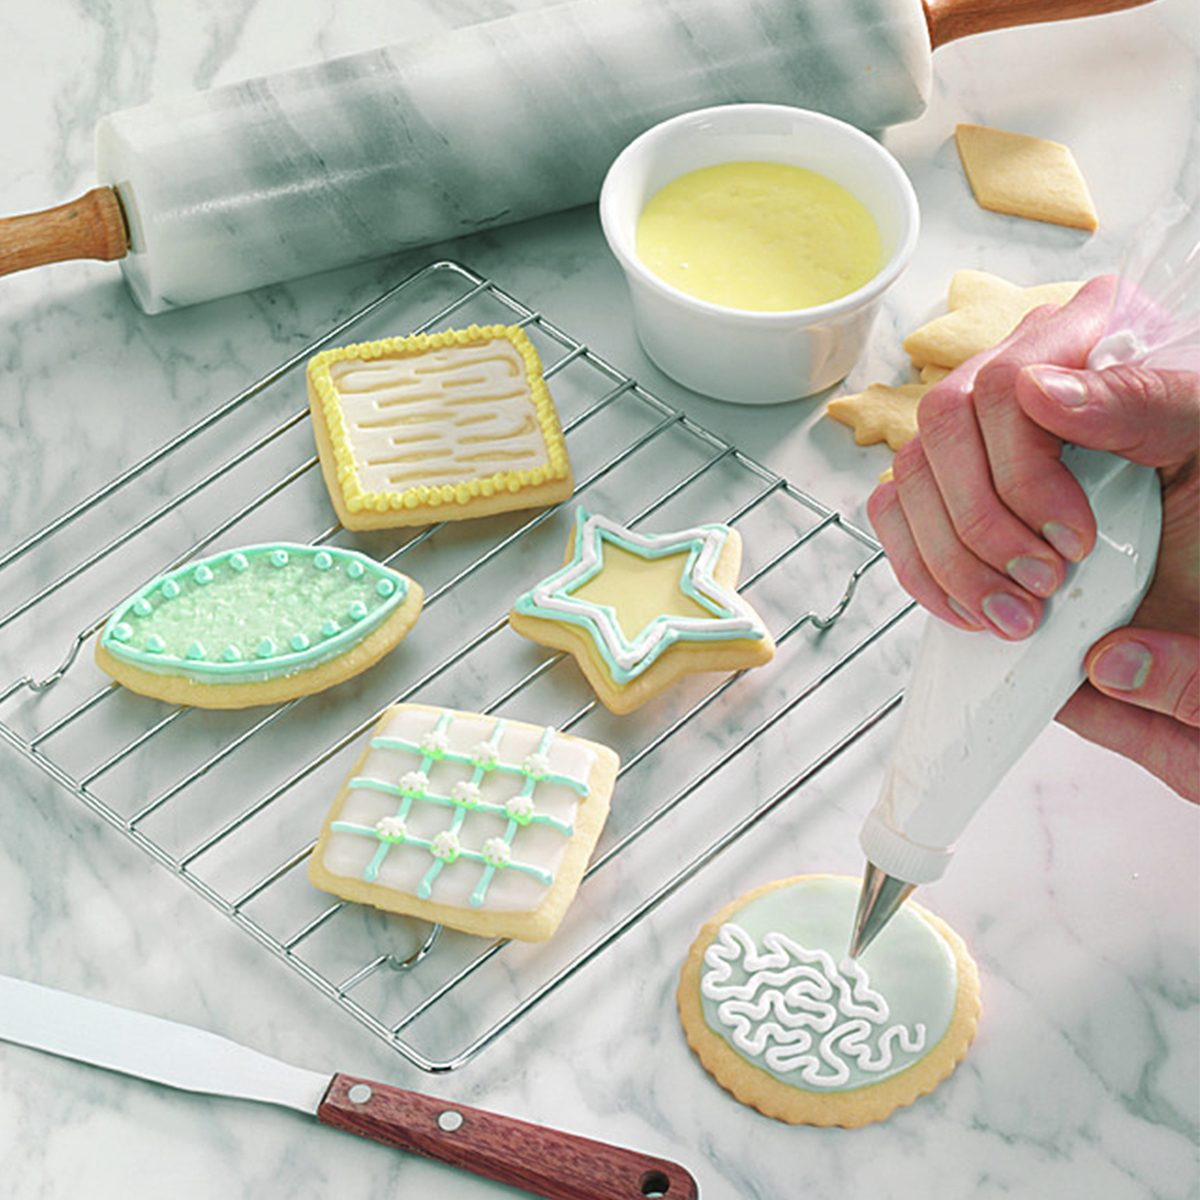 glazing and decorating cookies